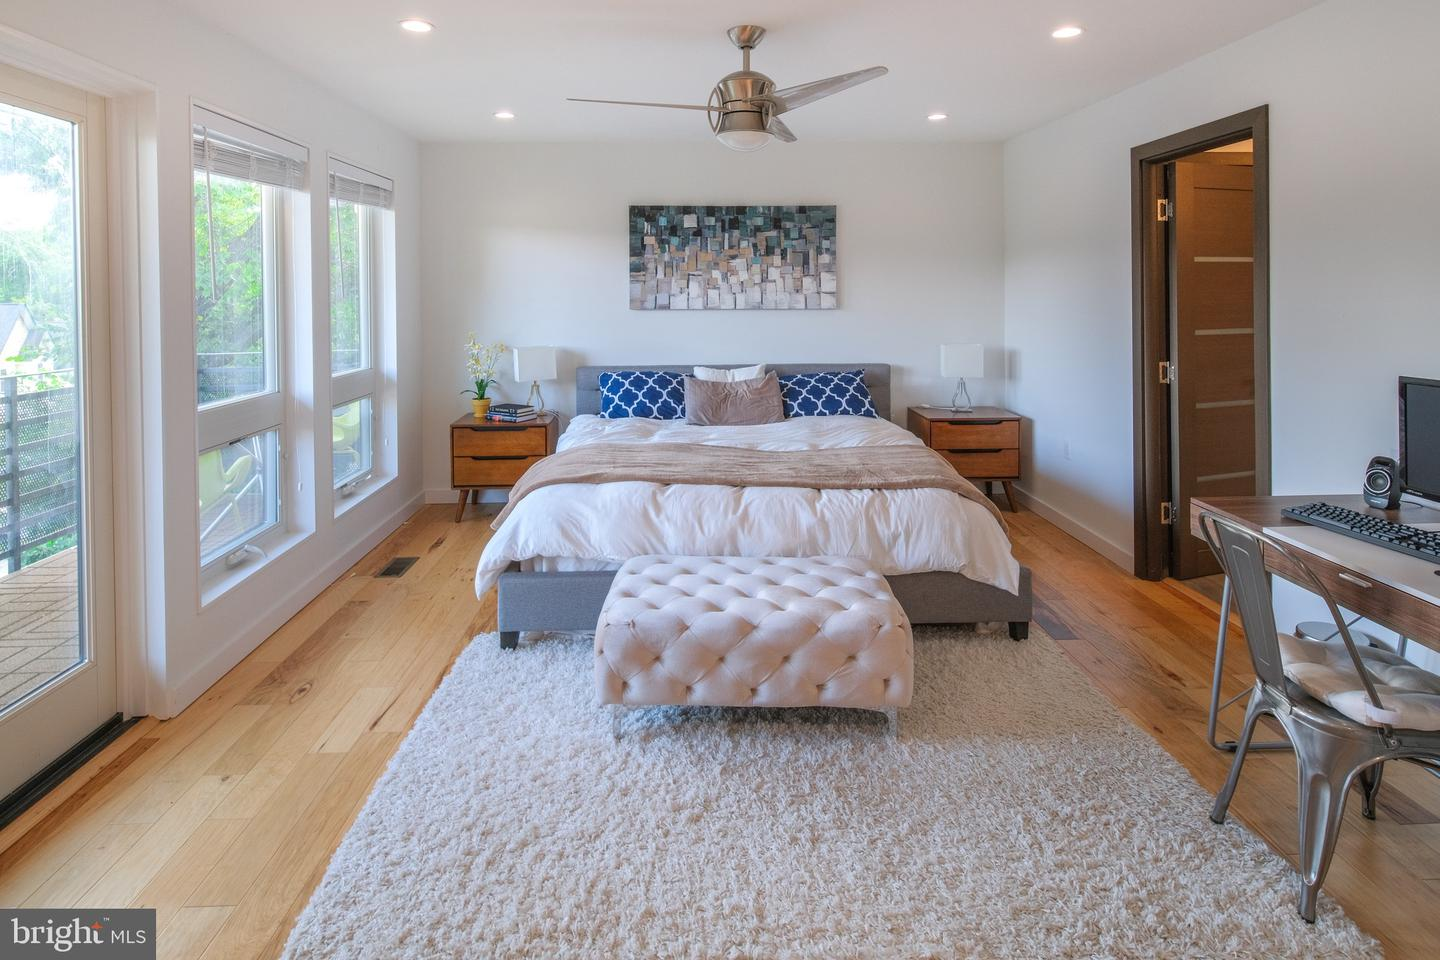 Additional photo for property listing at  Cabin John, Maryland 20818 Hoa Kỳ